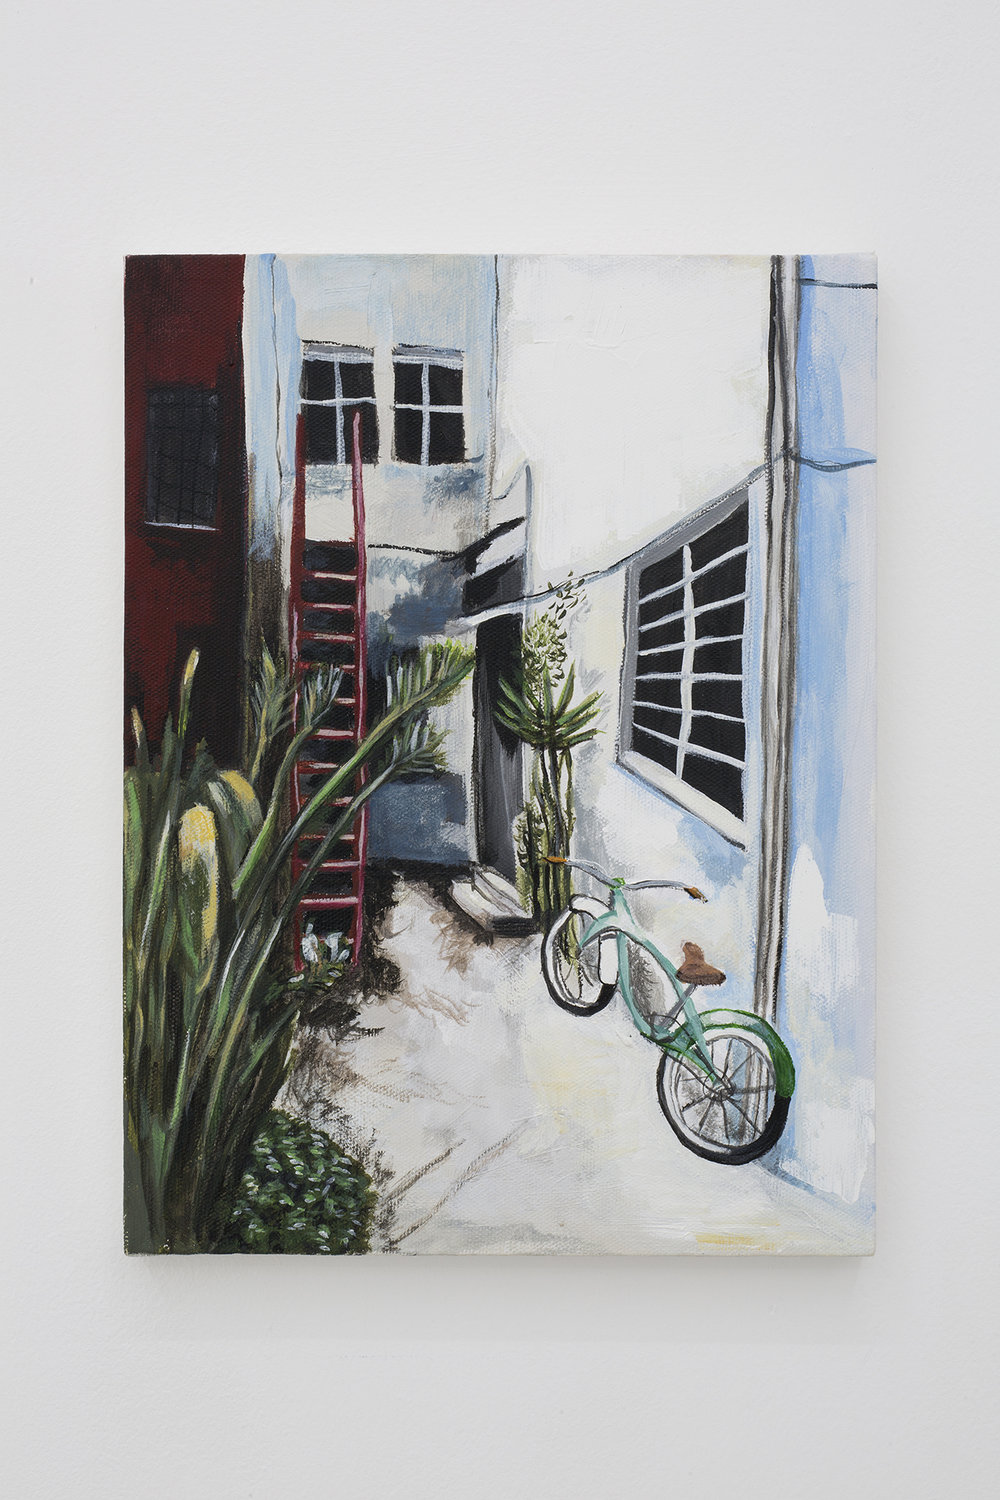 Shana Sharp, Bycicle, 2018. Acrylic on canvas. 9 x 12 inch (22.86 x  30.48 cm)